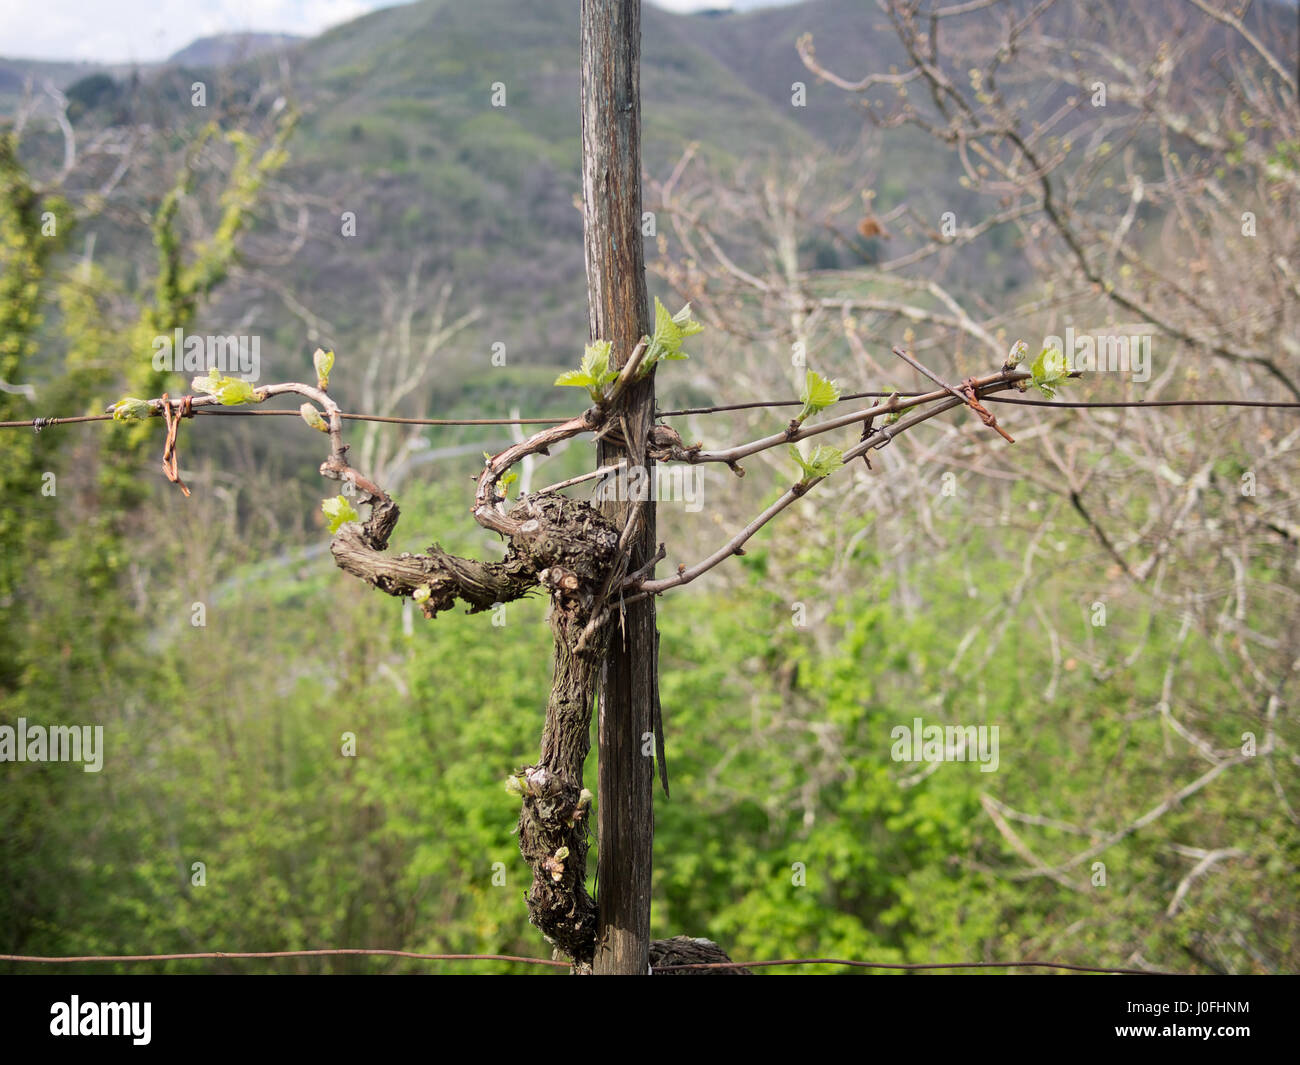 Italian grapevine. Old plant with new growth in spring. Traditionally trained. - Stock Image